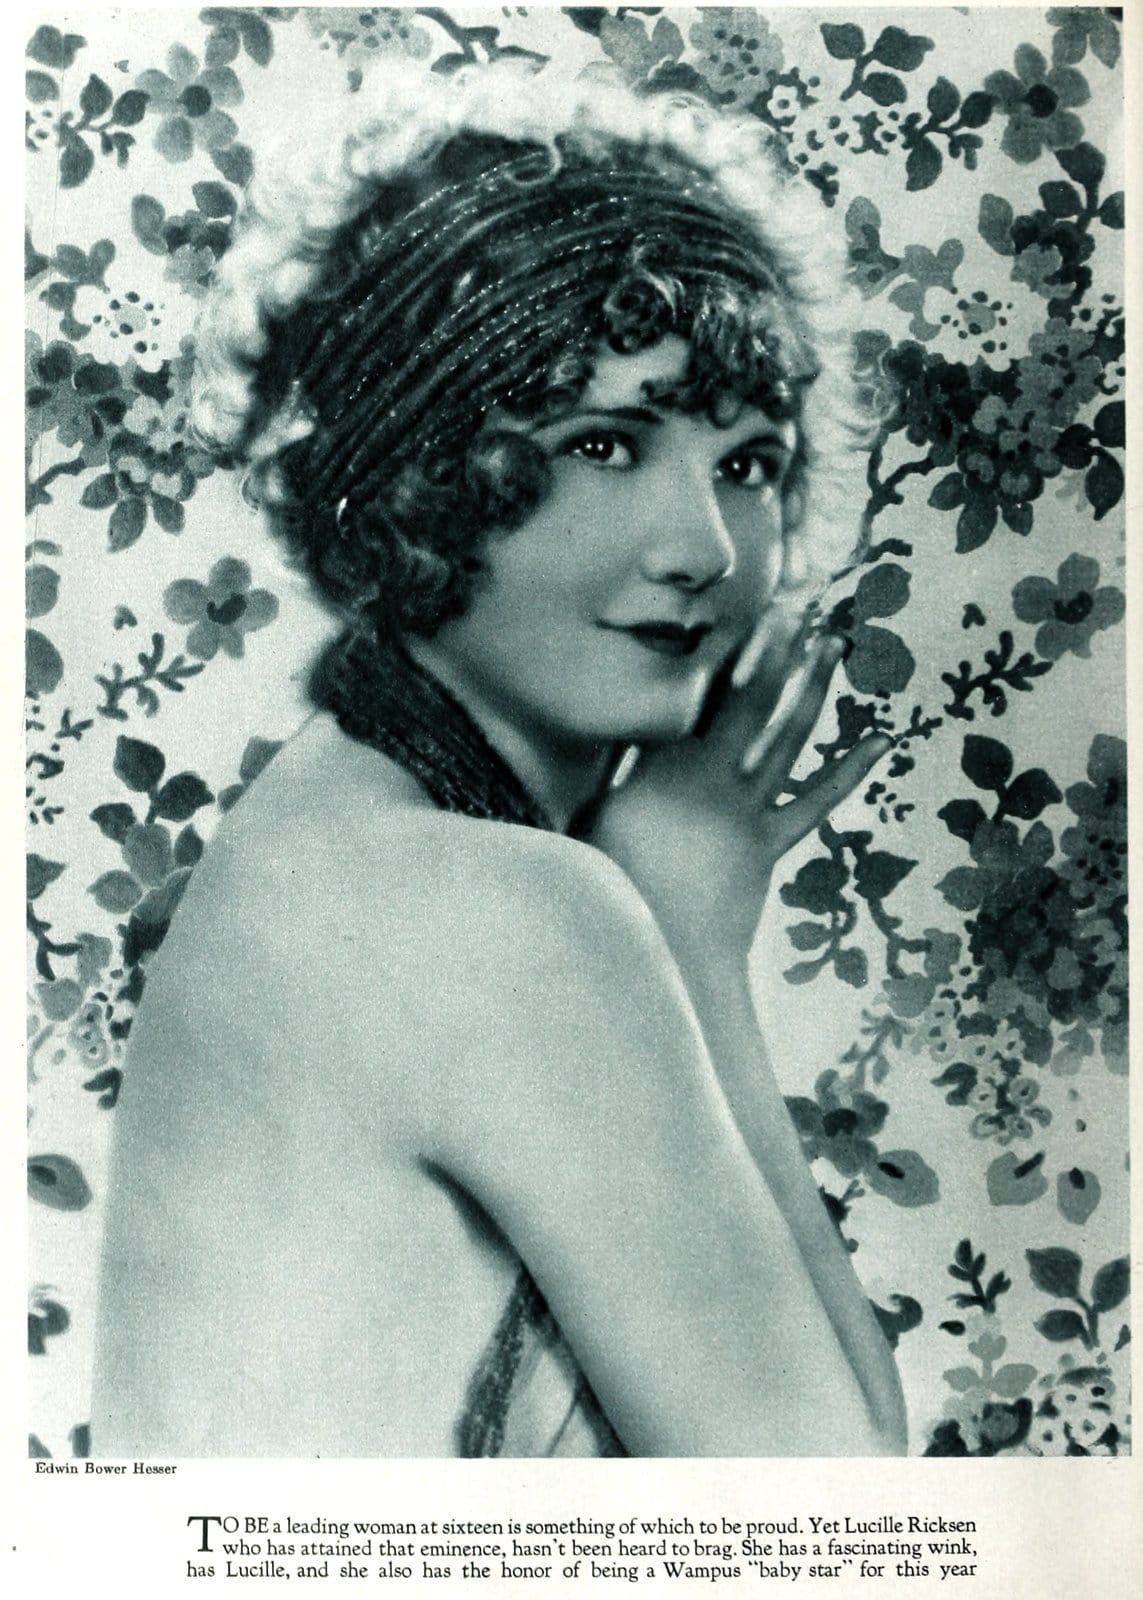 Old-fashioned 1920s womens hairstyles - actress Lucille Ricksen